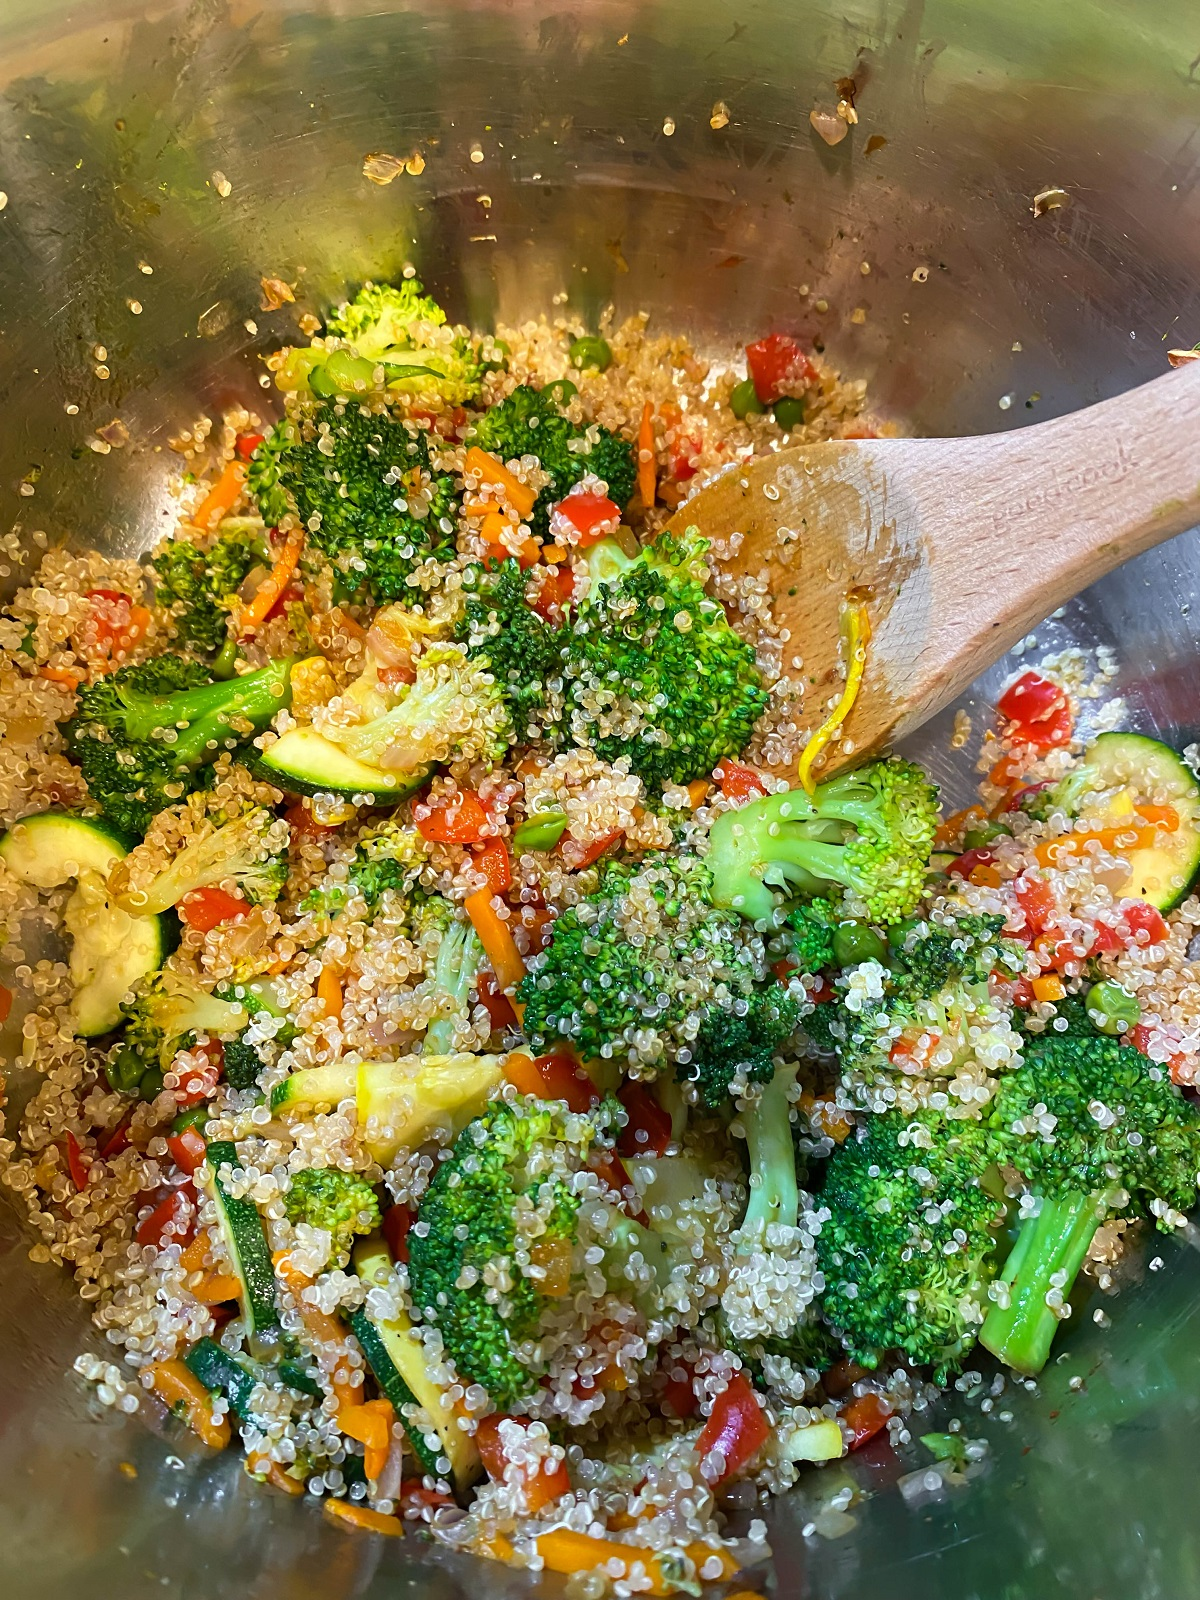 quinoa mixed with veggies and wooden spoon in large pot